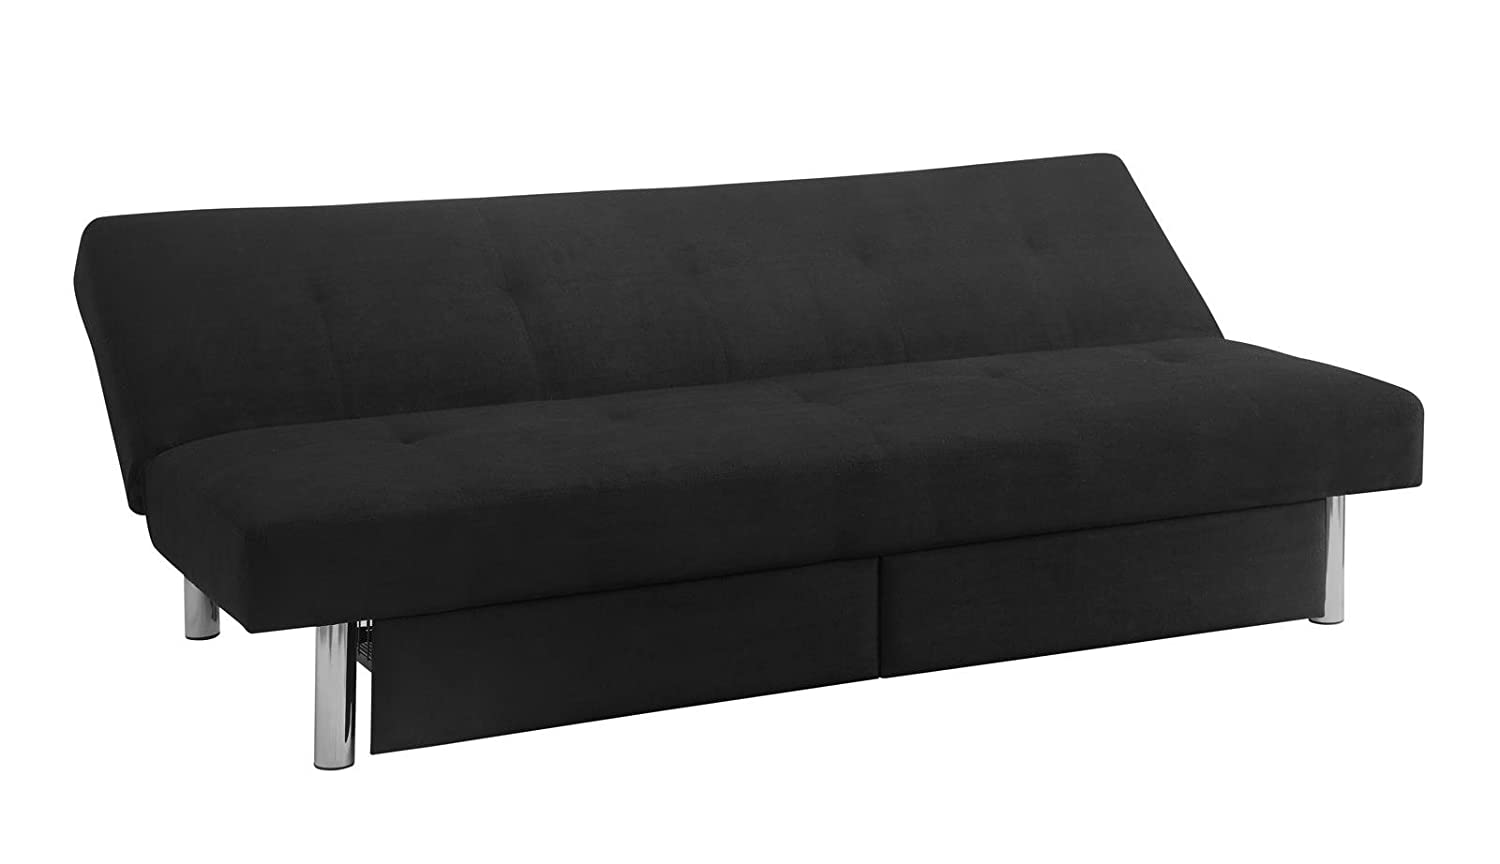 amazon    dhp sola convertible sofa futon with space saving storage  partments chrome legs and upholstered in rich black microfiber  home  u0026 kitchen amazon    dhp sola convertible sofa futon with space saving      rh   amazon